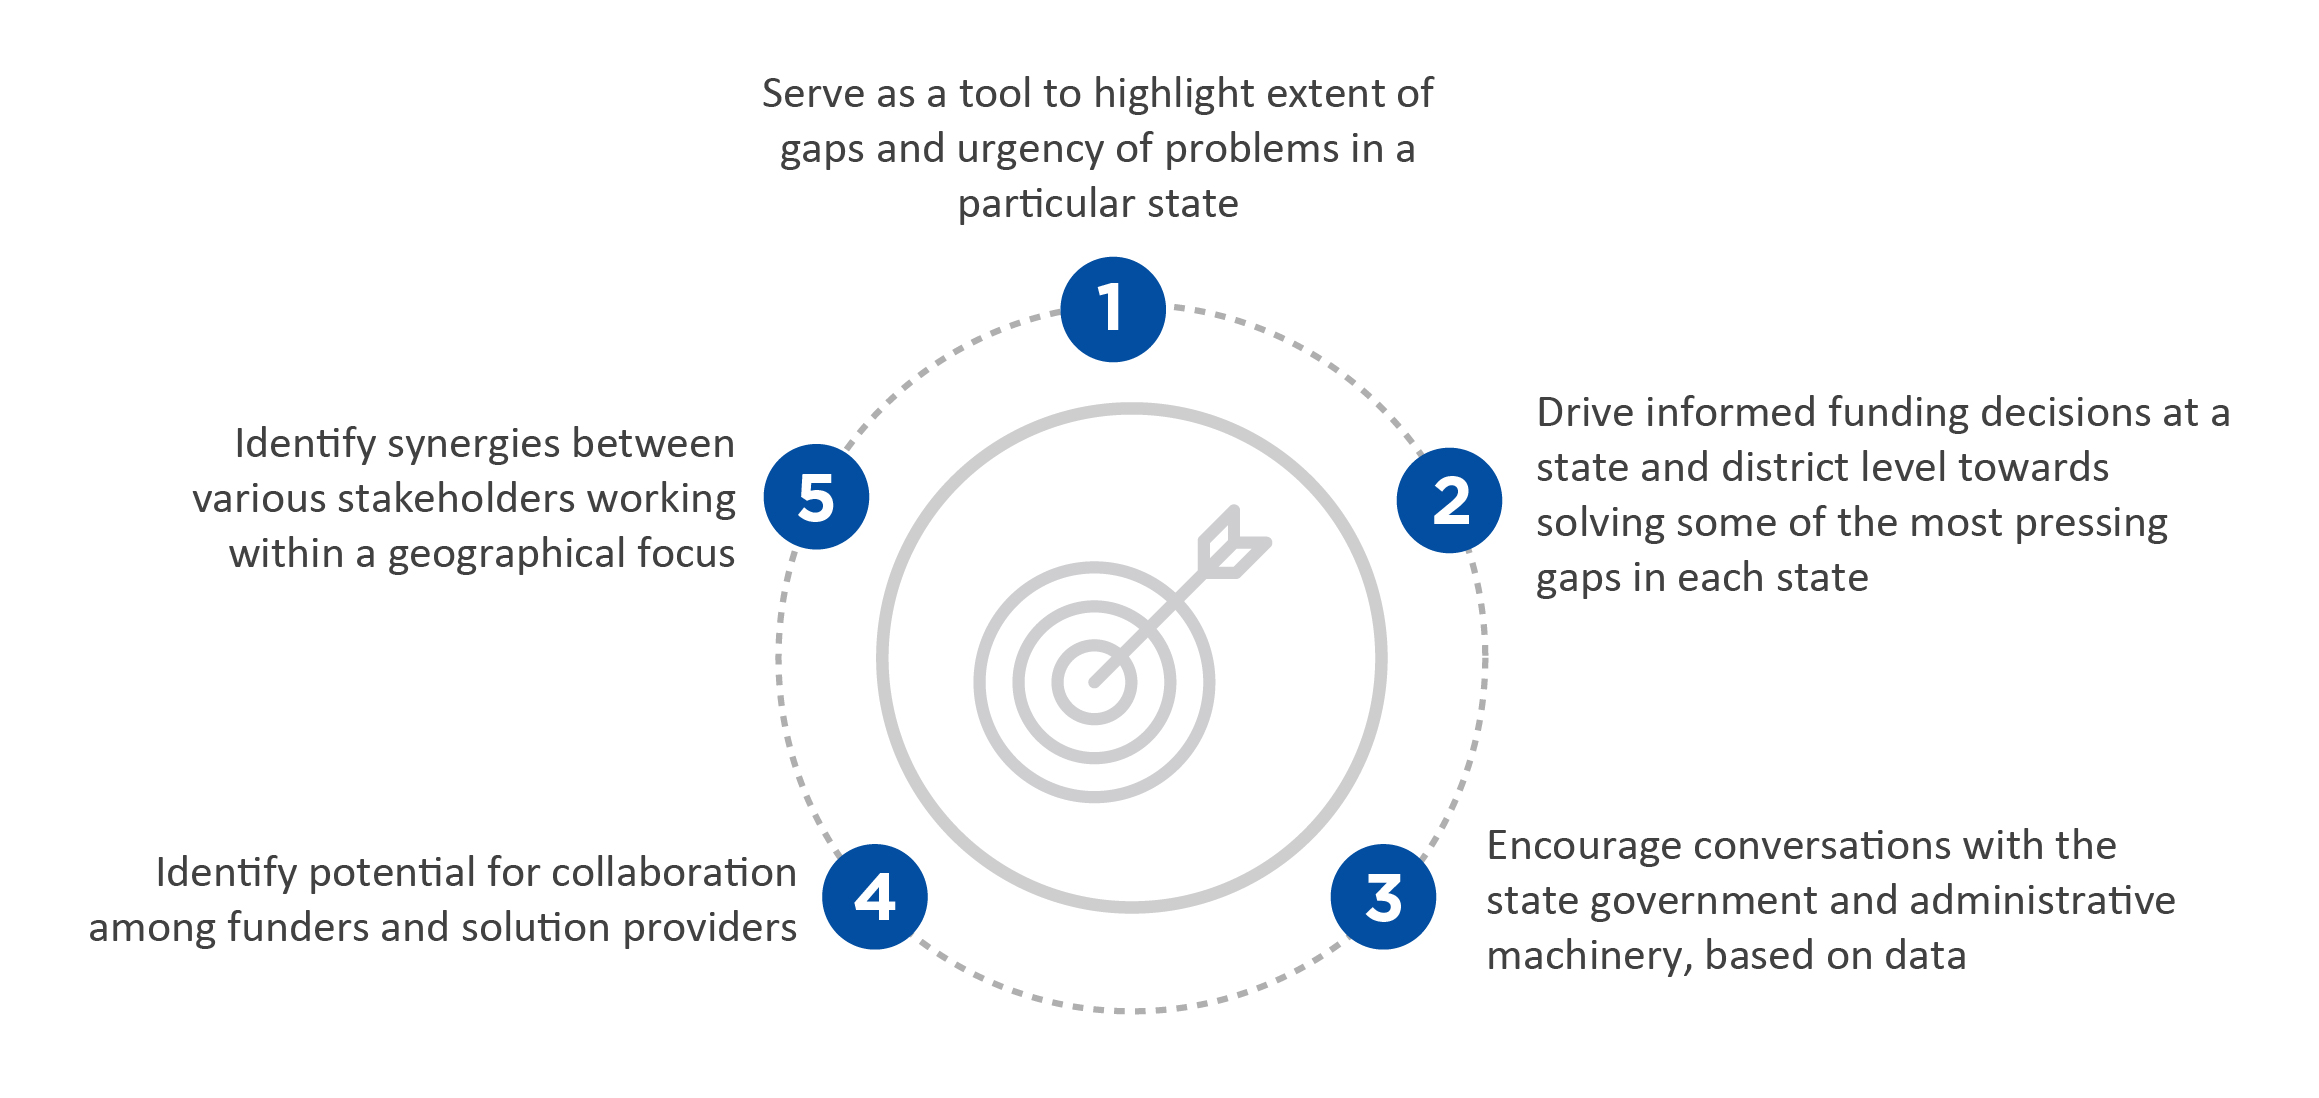 1_Objectives of the tool